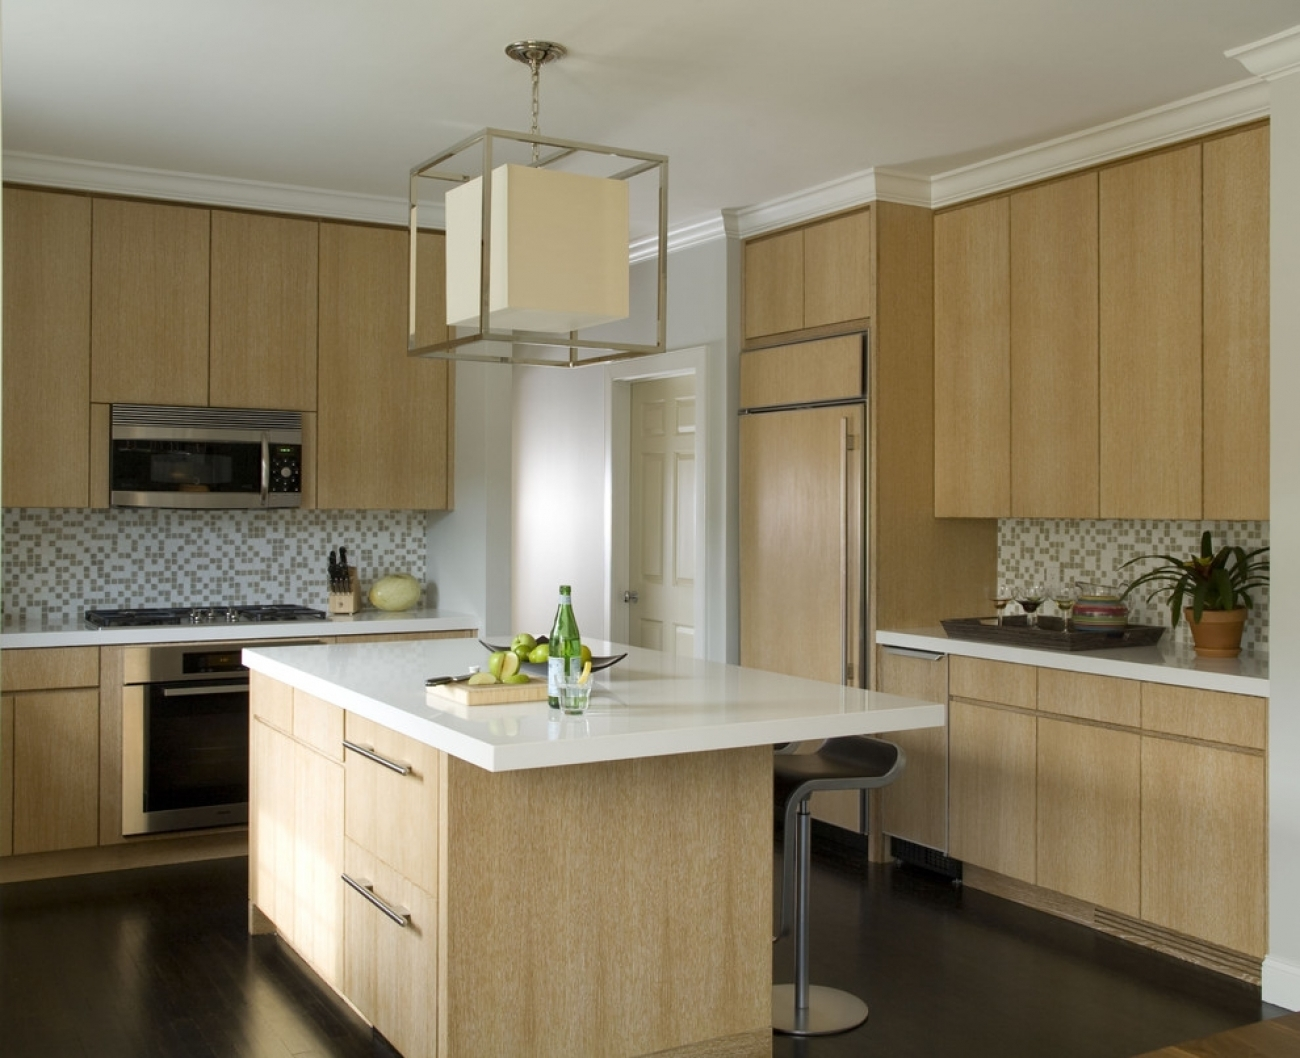 Permalink to Light Wood Kitchen Cabinets